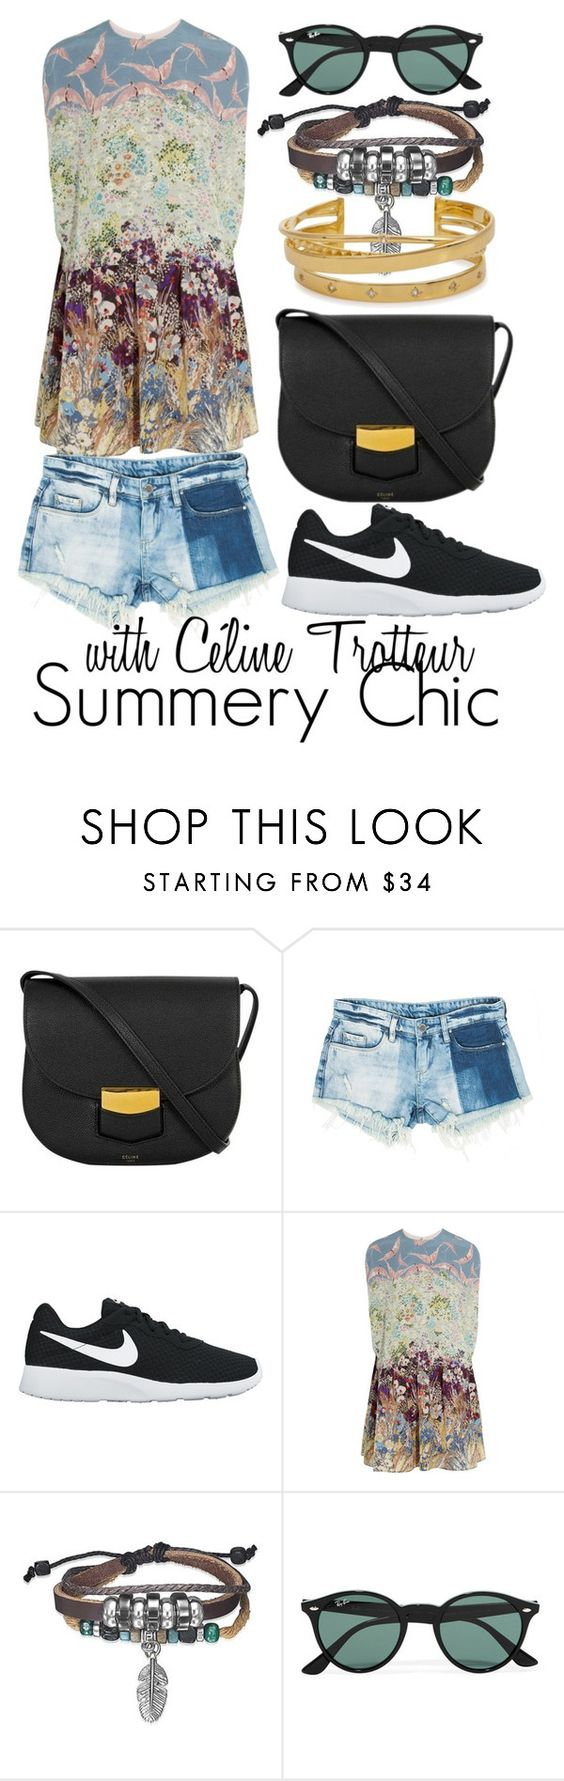 """""""Céline Trotteur - Summer"""" by luxurycitizen on Polyvore featuring Sans Souci, NIKE, Valentino, Bling Jewelry, Ray-Ban and Elizabeth and James"""